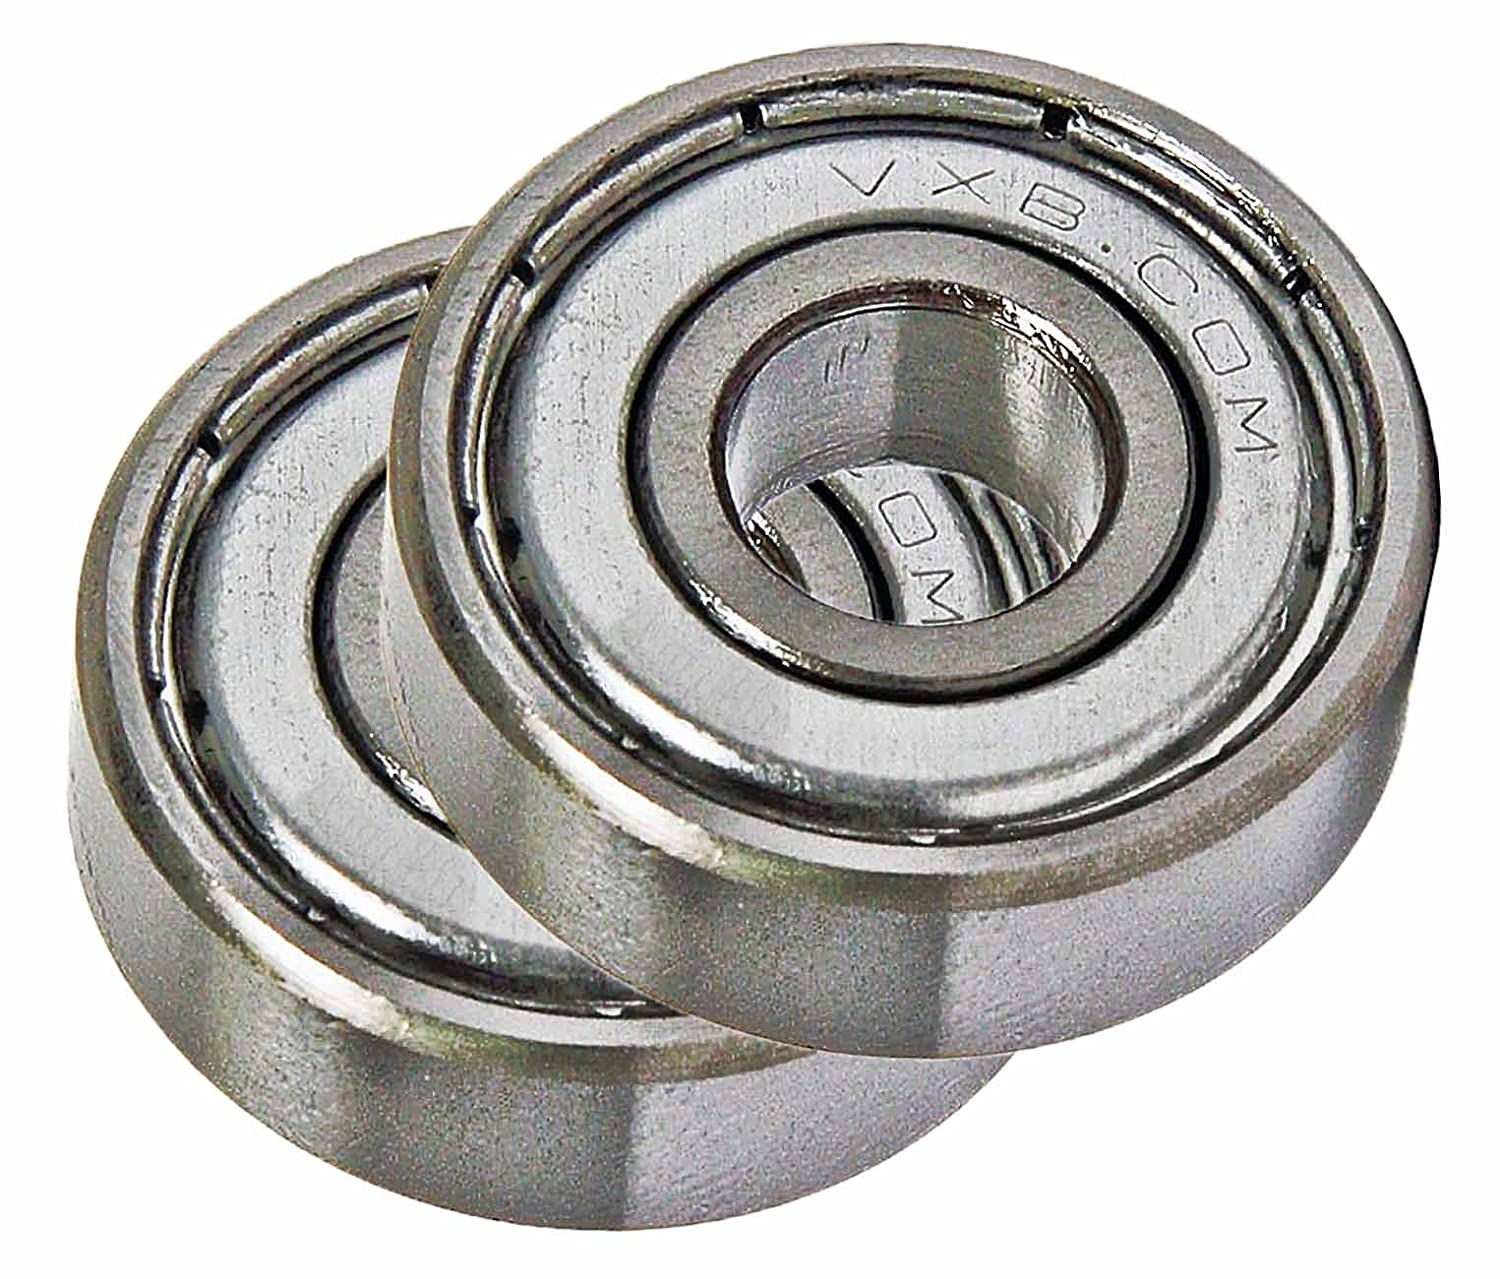 Open End 31000rpm Maximum Rotational Speed Metric 10mm Width Cage and Roller INA K8X12X10TN Needle Roller Bearing Single Row 12mm OD 8mm ID Polyamide Nylon Cage